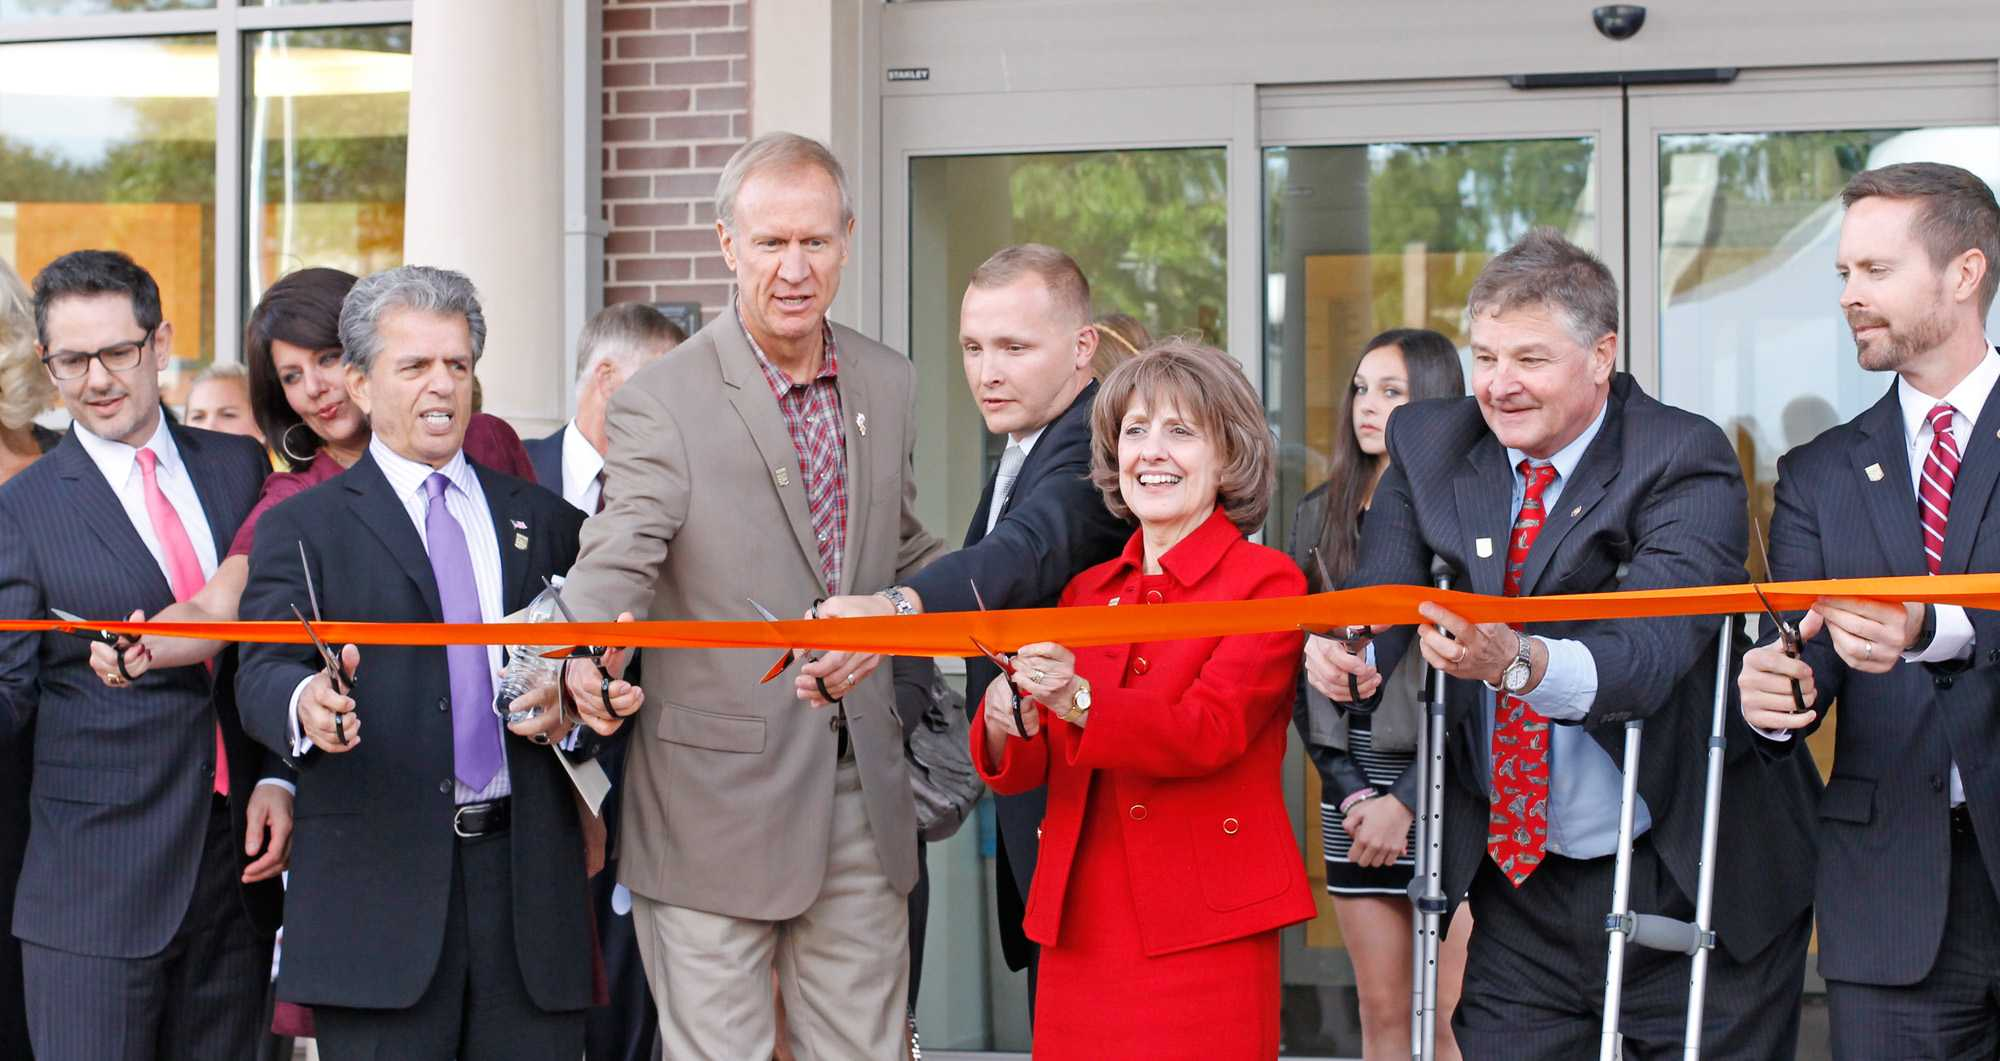 IllinoisGovernor Bruce Rauner attends the Dedication Ceremony and ribbon cuttingfor the Center for Wounded Veterans in Higher Education in Urbana on October 2.